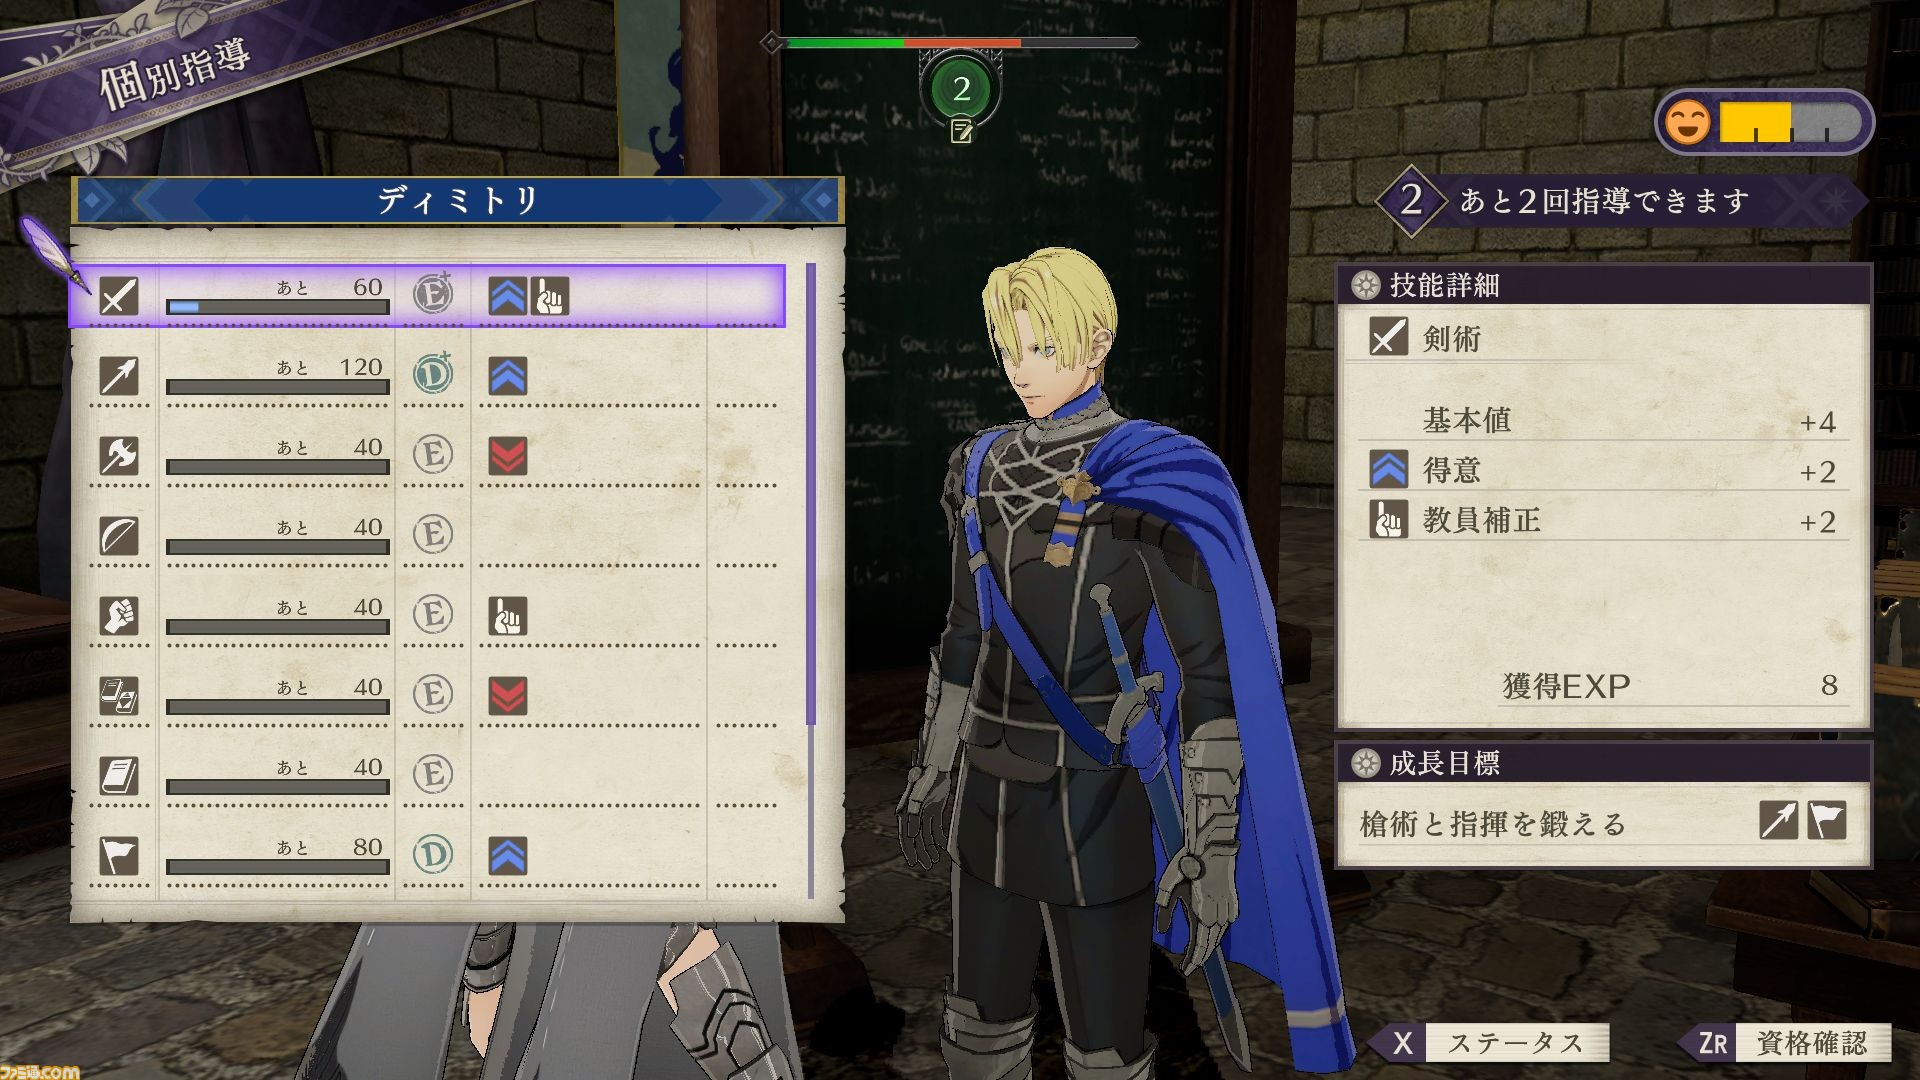 https://www.perfectly-nintendo.com/wp-content/uploads/sites/1/nggallery/fire-emblem-three-houses-15-05-2019/50.jpg